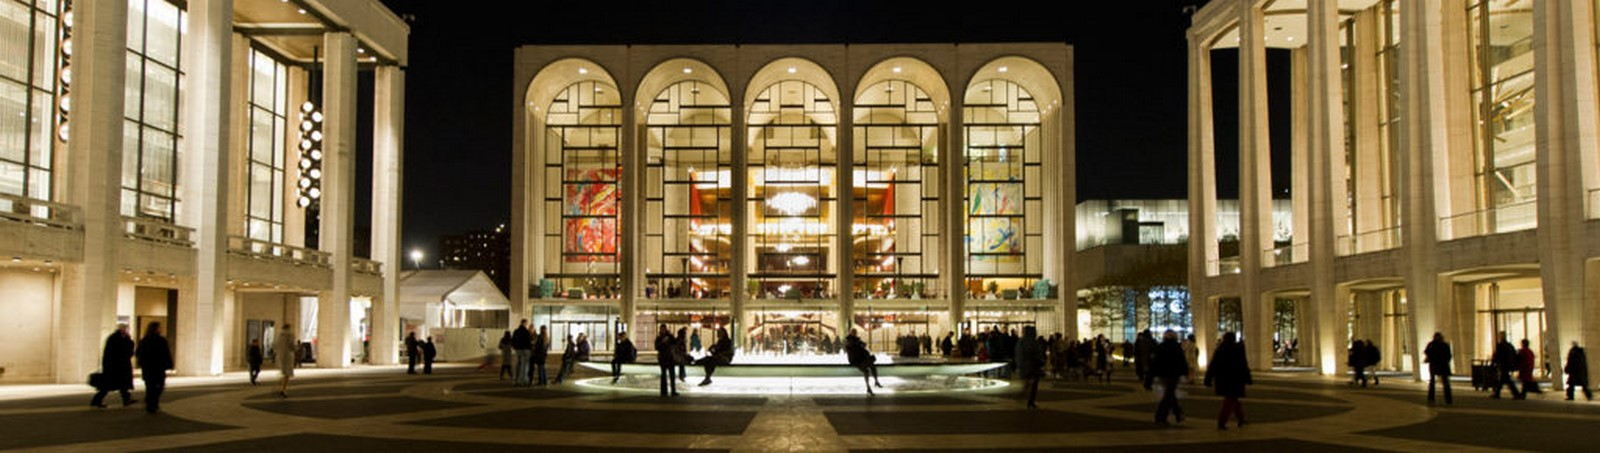 10 Things you did not know about Lincoln Center, New York City - Sheet5